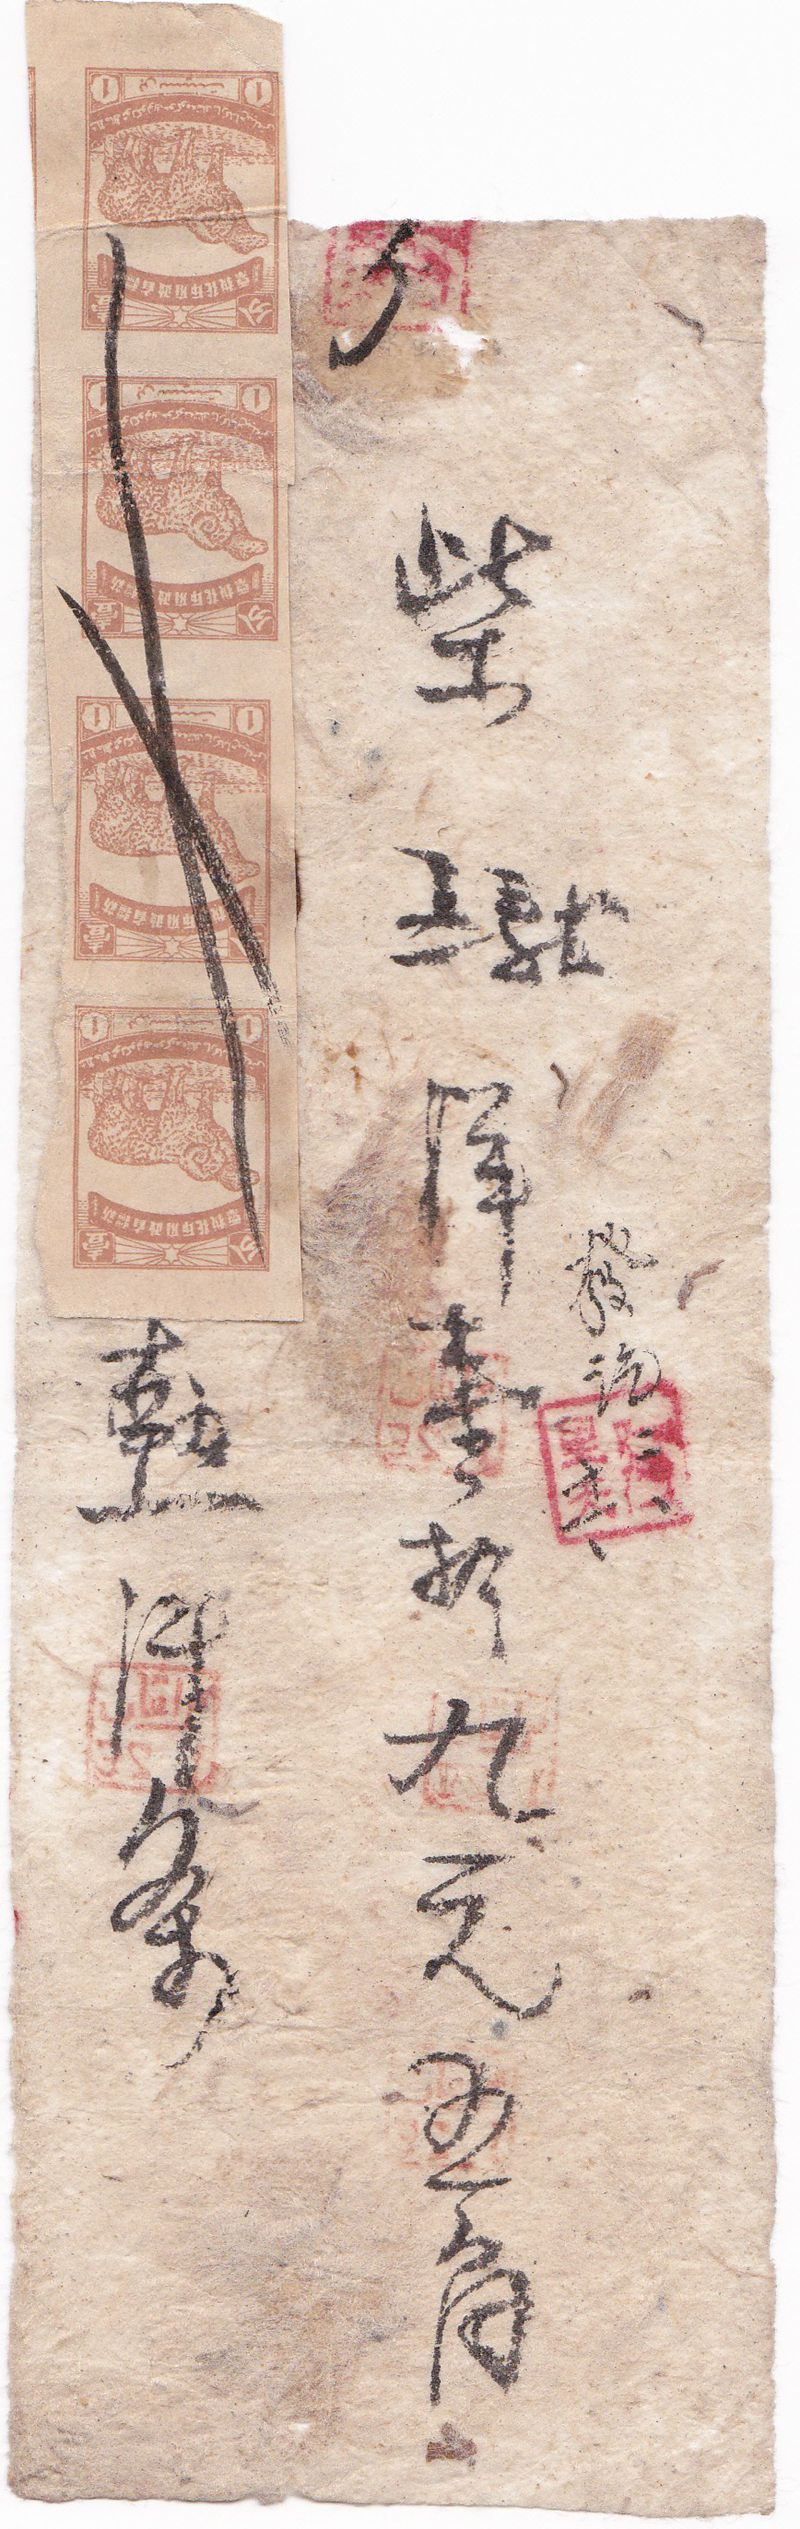 R2034, China Sinkiang 1 Cent Revenue Stamp for four pcs in the sheet, 1948